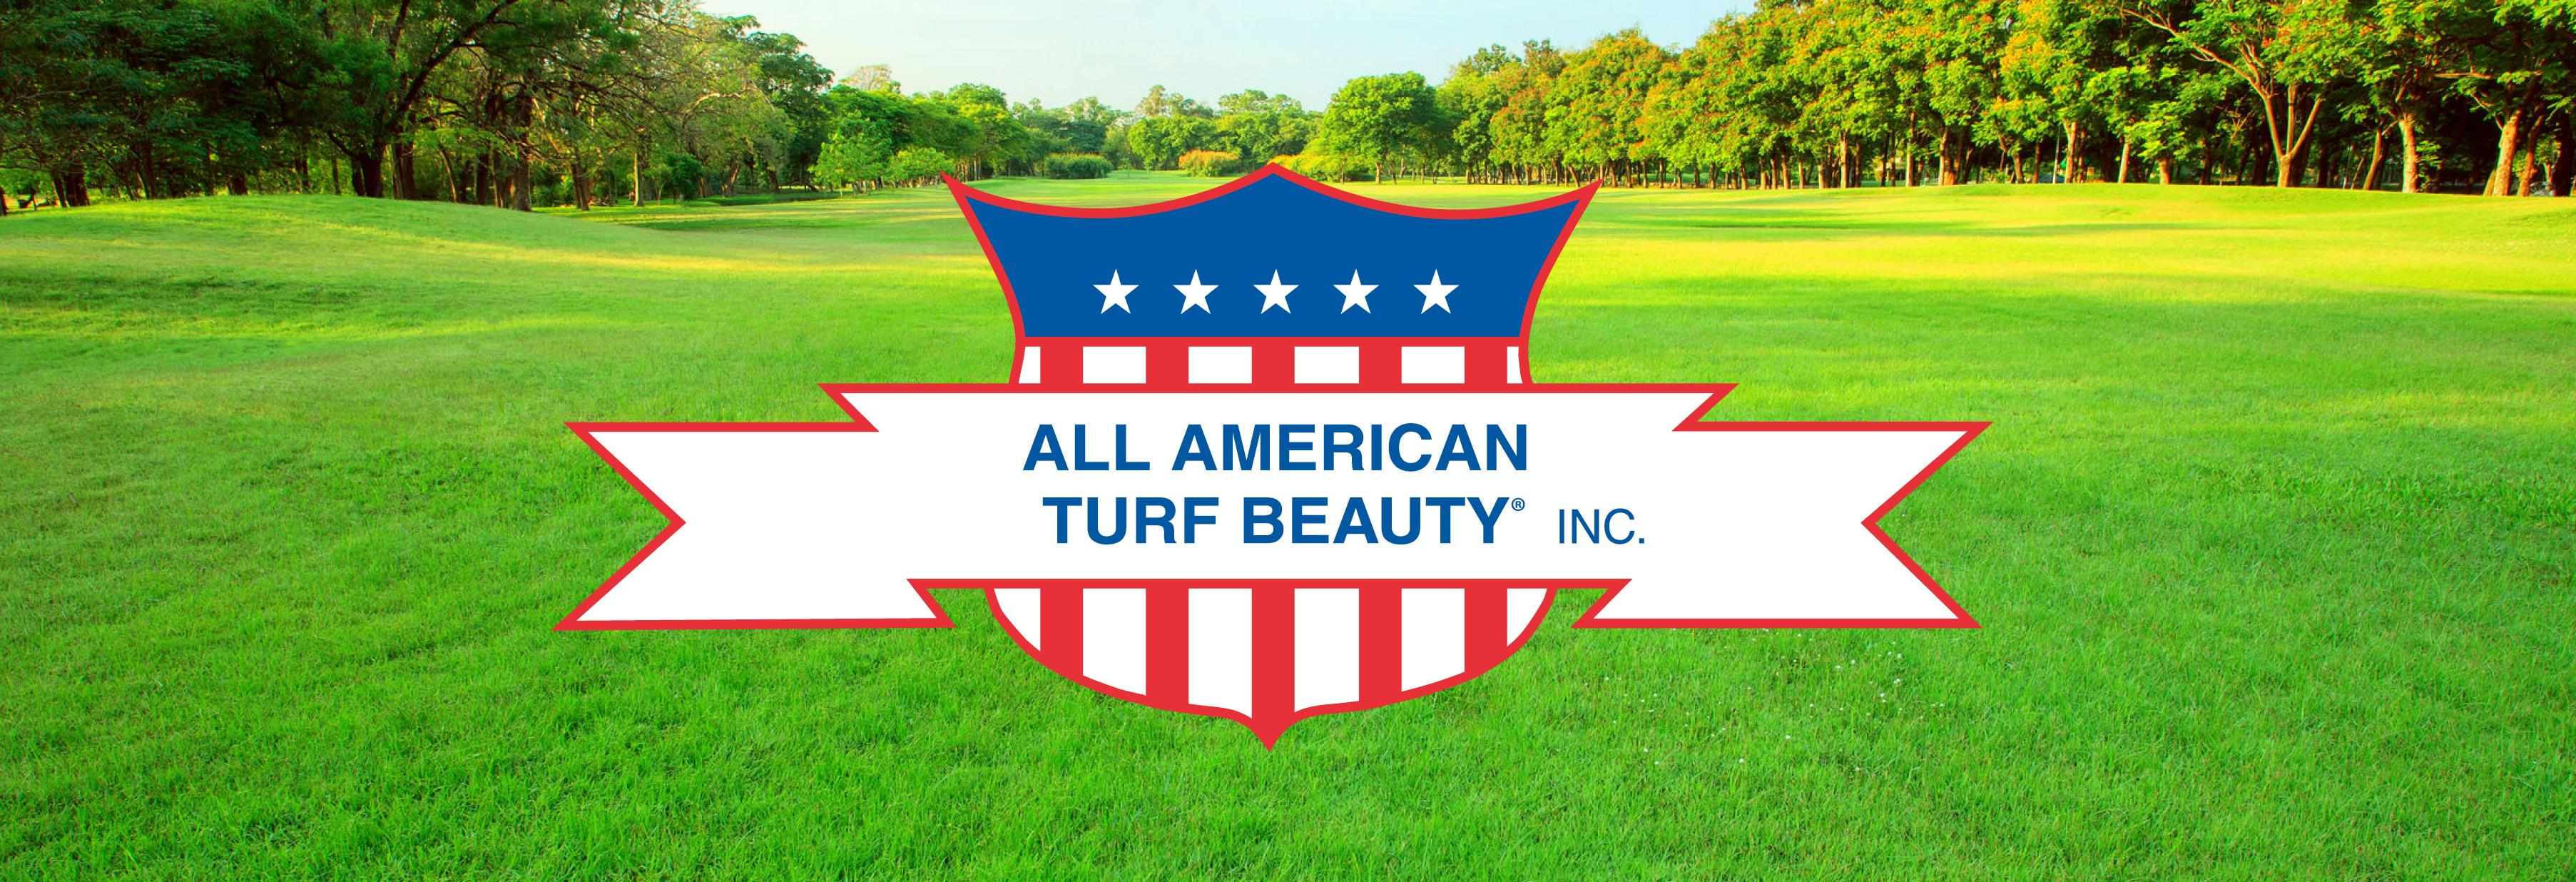 All American turf beauty inc lawn care landscape lighting iowa homeowners